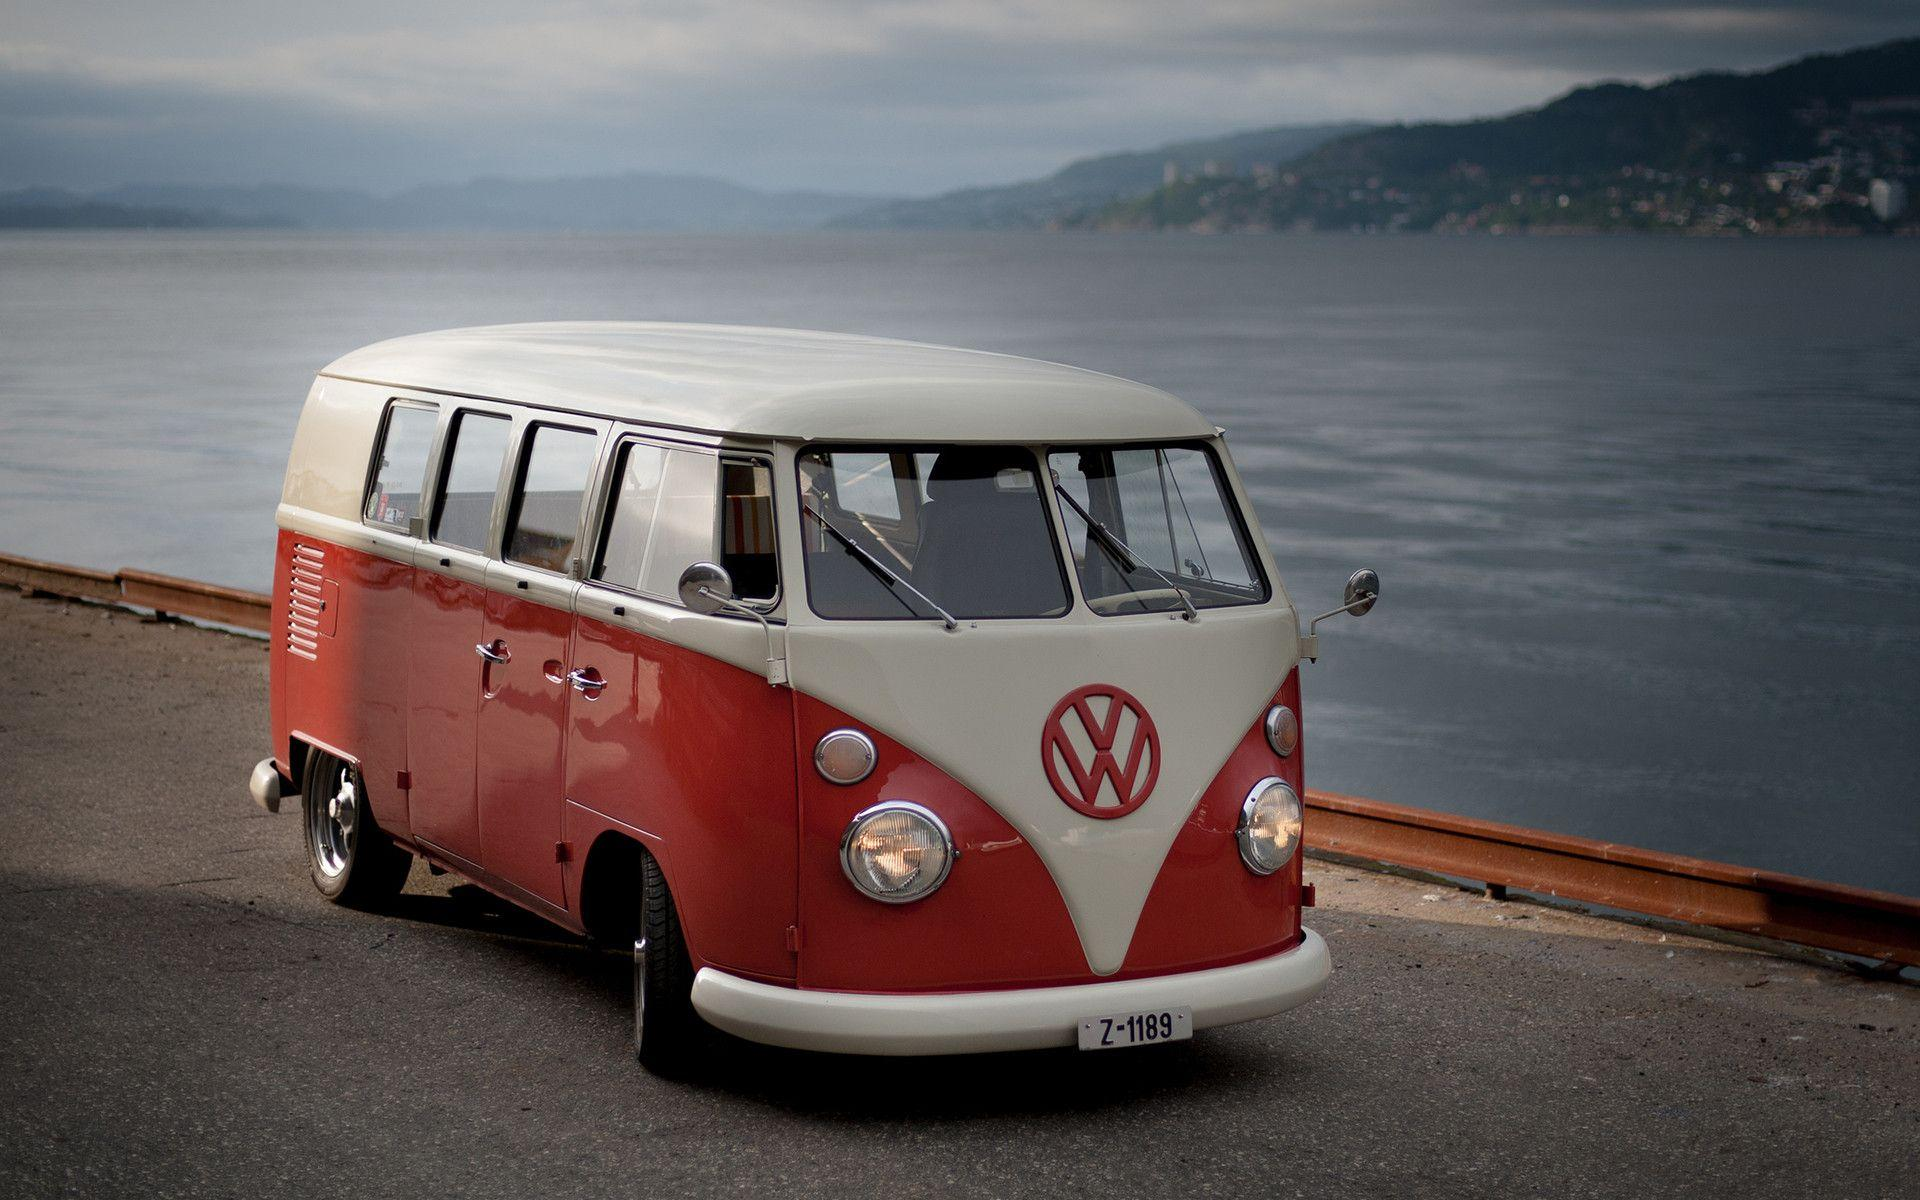 Volkswagen Bus tuning classic lowrider lowriders wallpapers ...